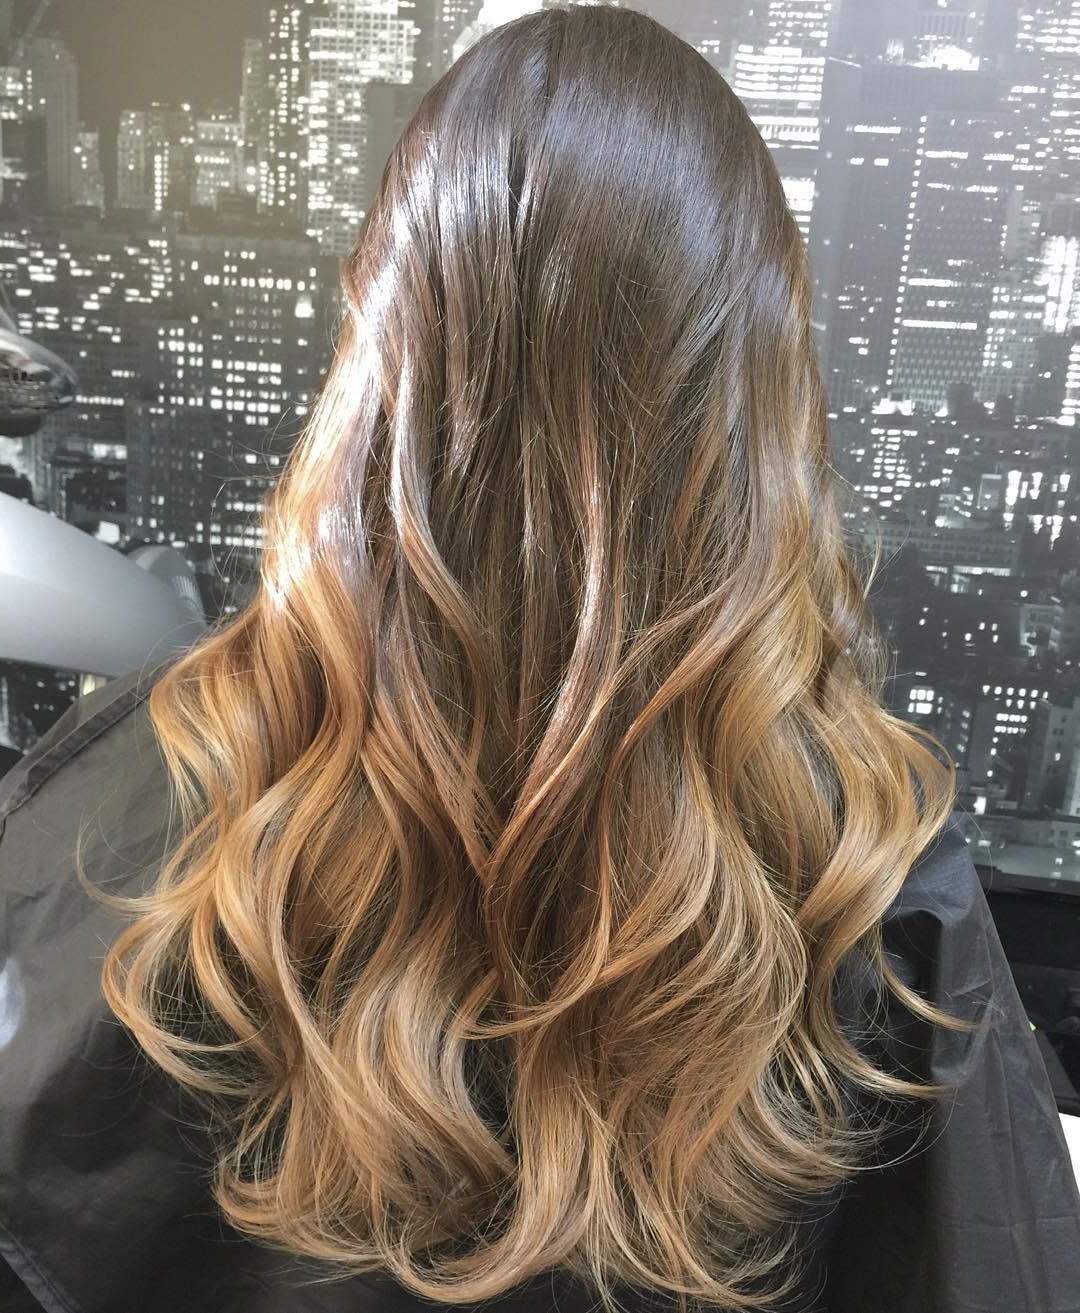 50 Ombre Hairstyles For Women – Ombre Hair Color Ideas 2019 With Newest Long Layered Ombre Hairstyles (View 7 of 20)